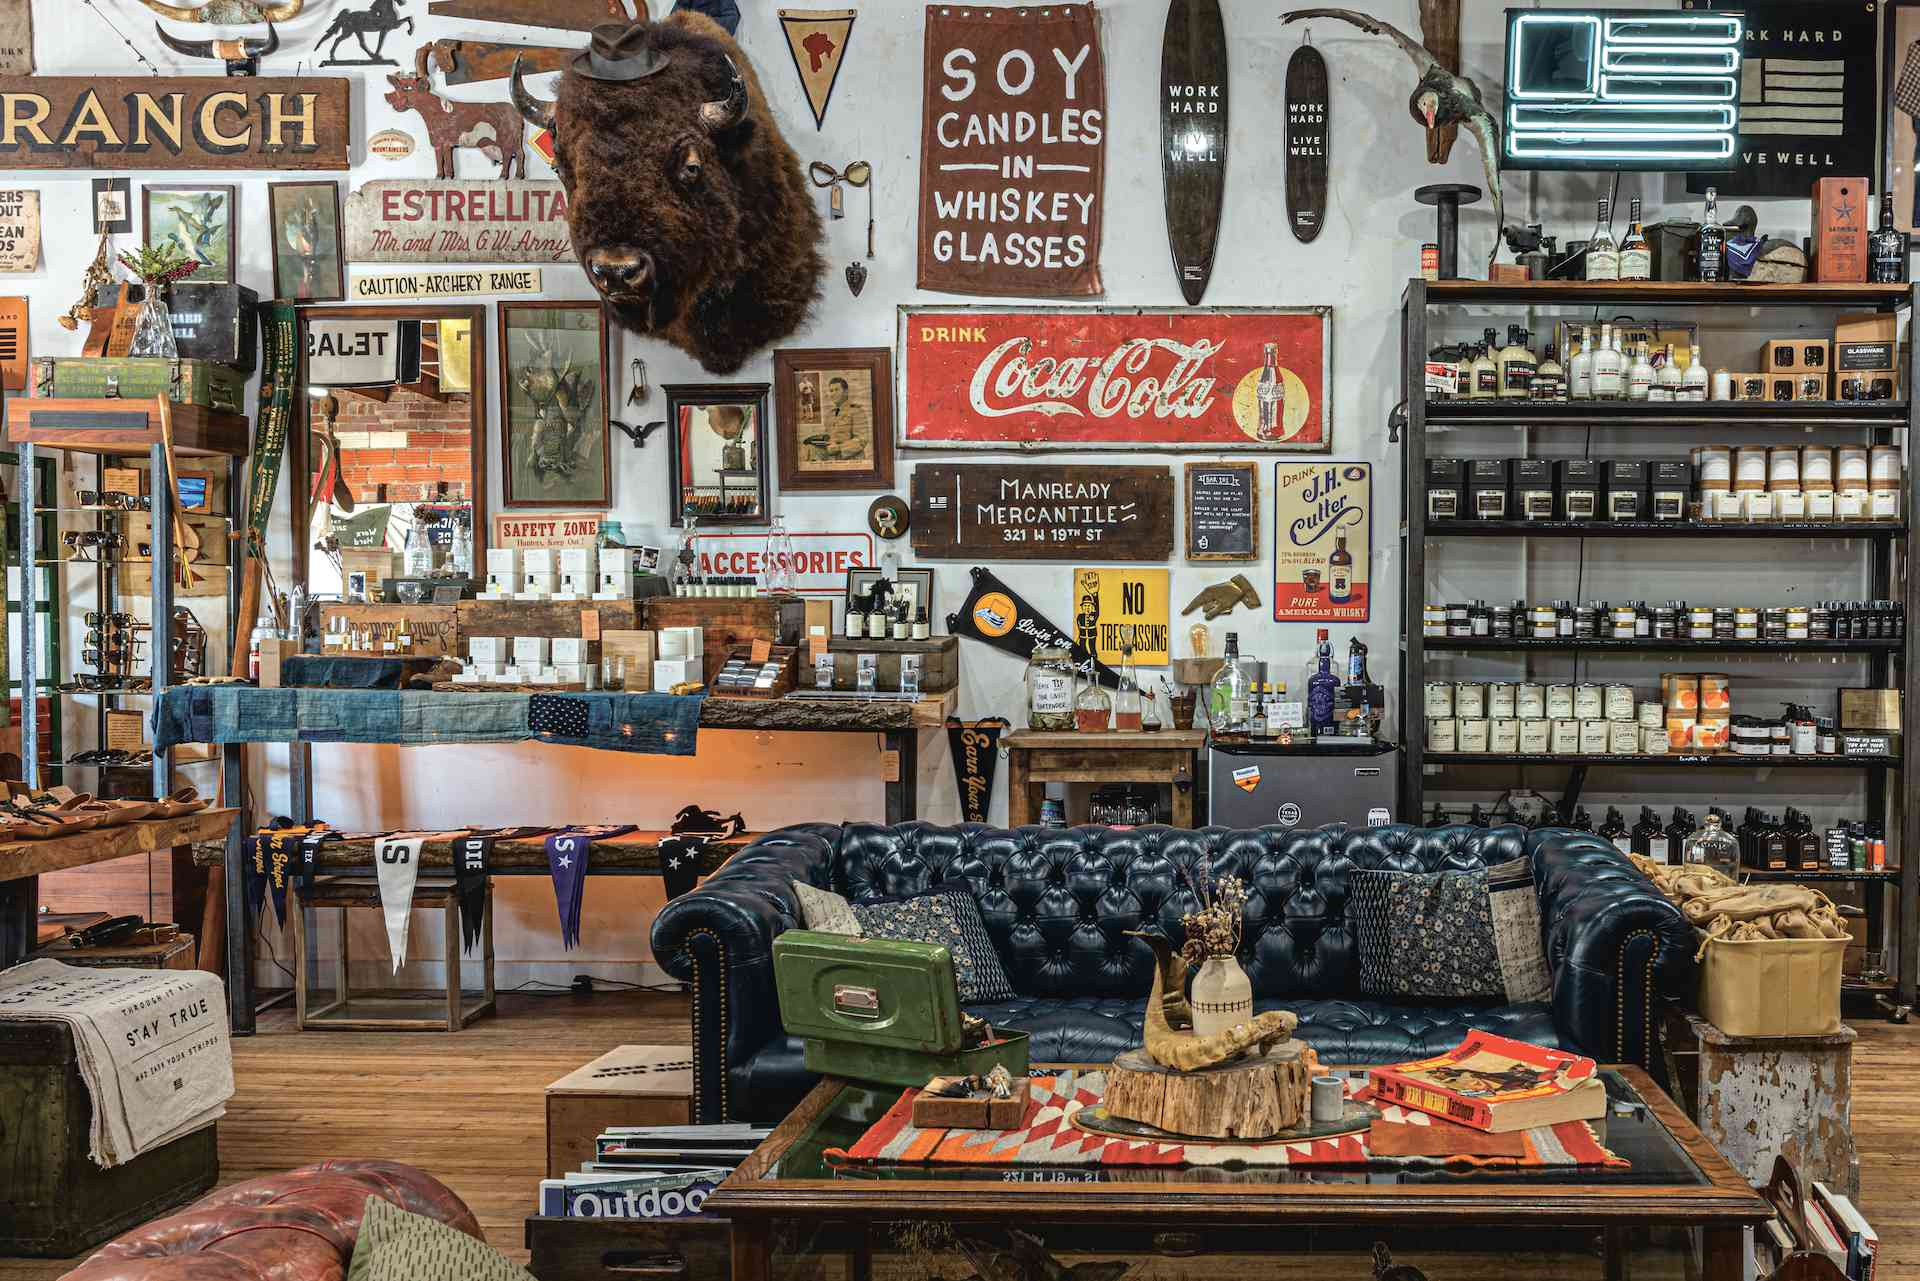 Interior of Manready Mercantile with a black leather couch, vintage signs on the walls and tables and shelves stacked with products